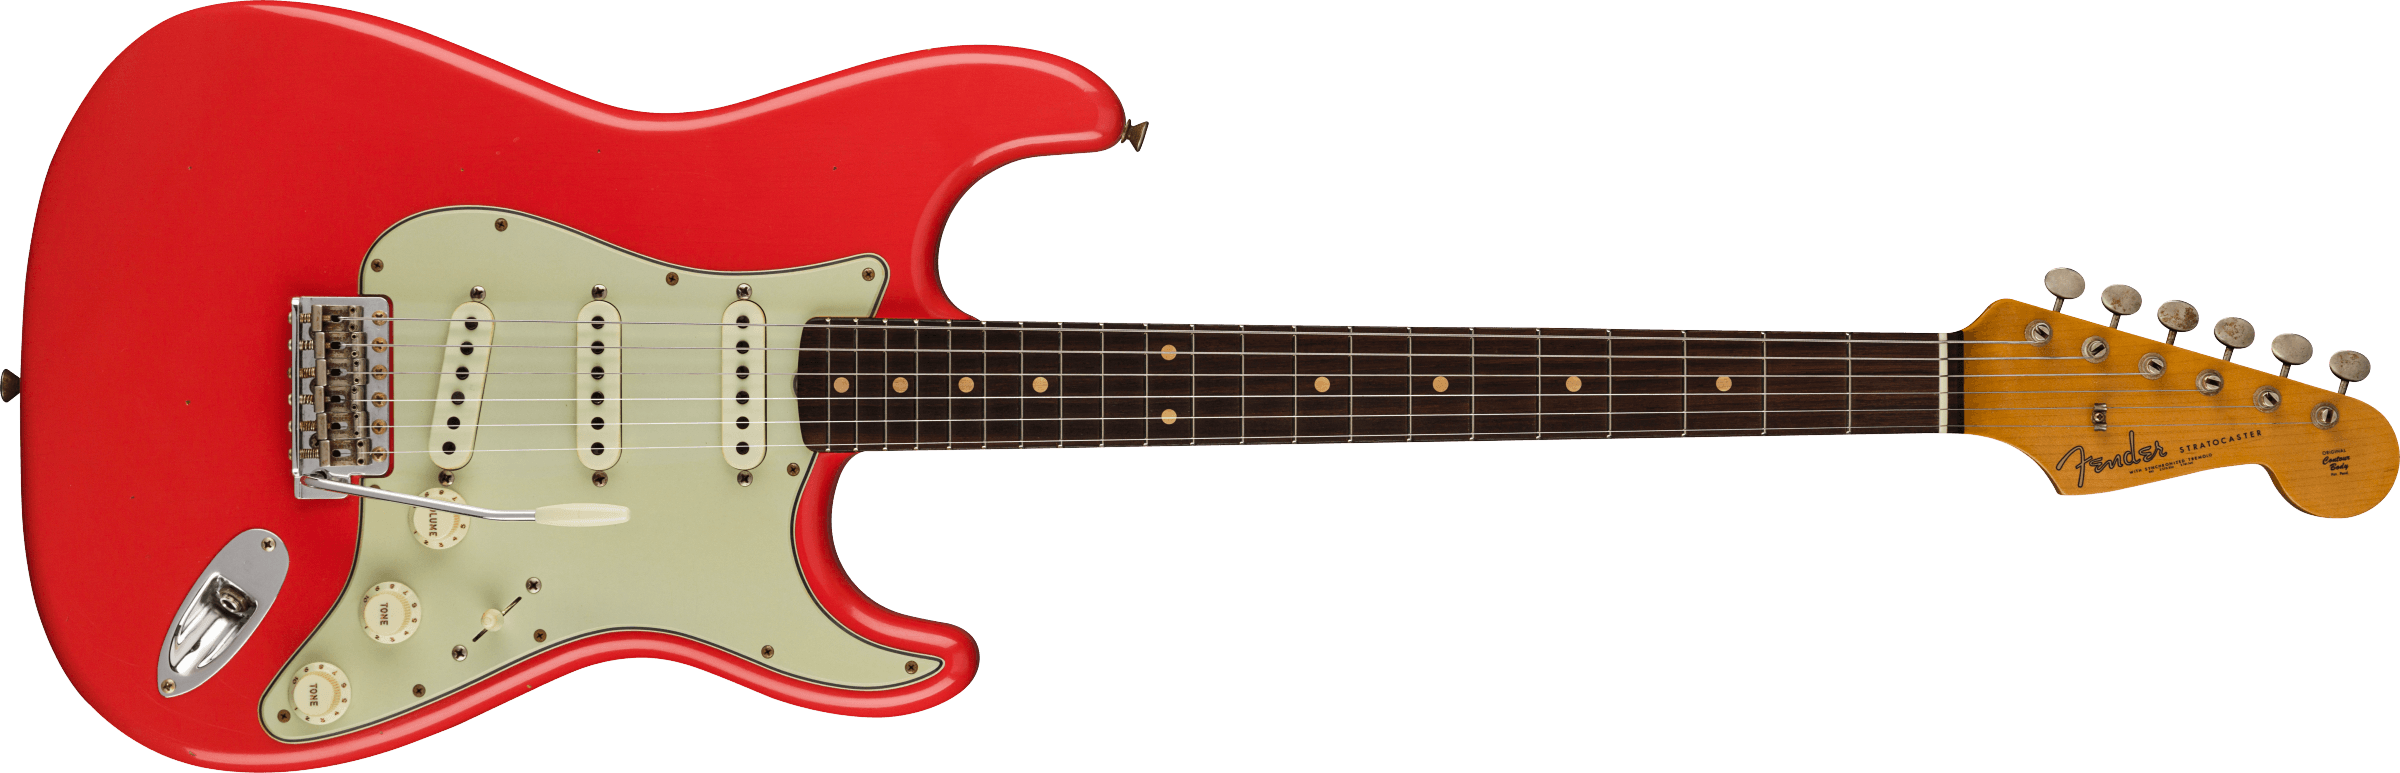 FENDER-Limited-Edition-62-63-Stratocaster-Journeyman-Relic-Rosewood-Fingerboard-Aged-Fiesta-Red-sku-571005154